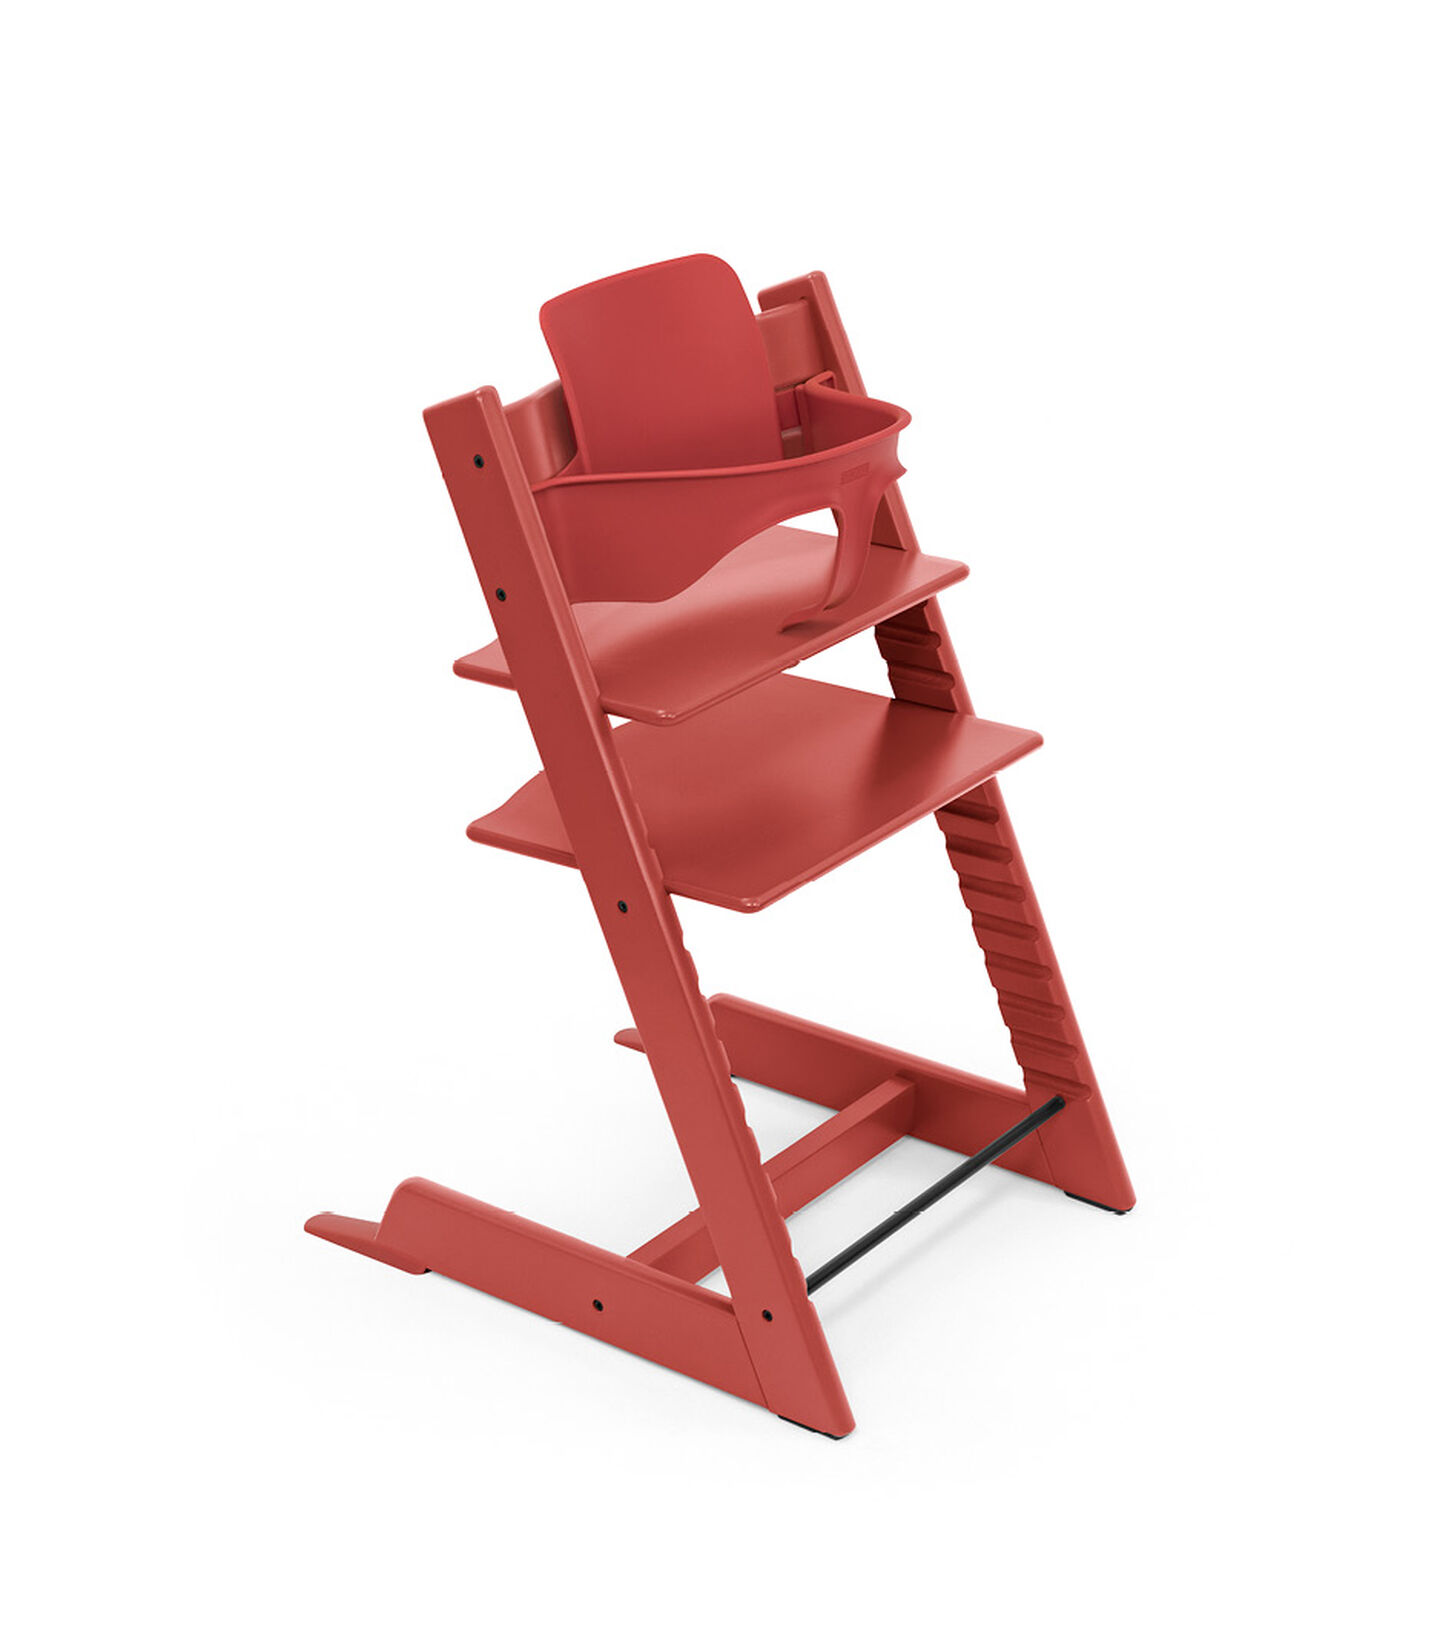 Tripp Trapp® chair Warm Red, Beech Wood, with Baby Set. view 4